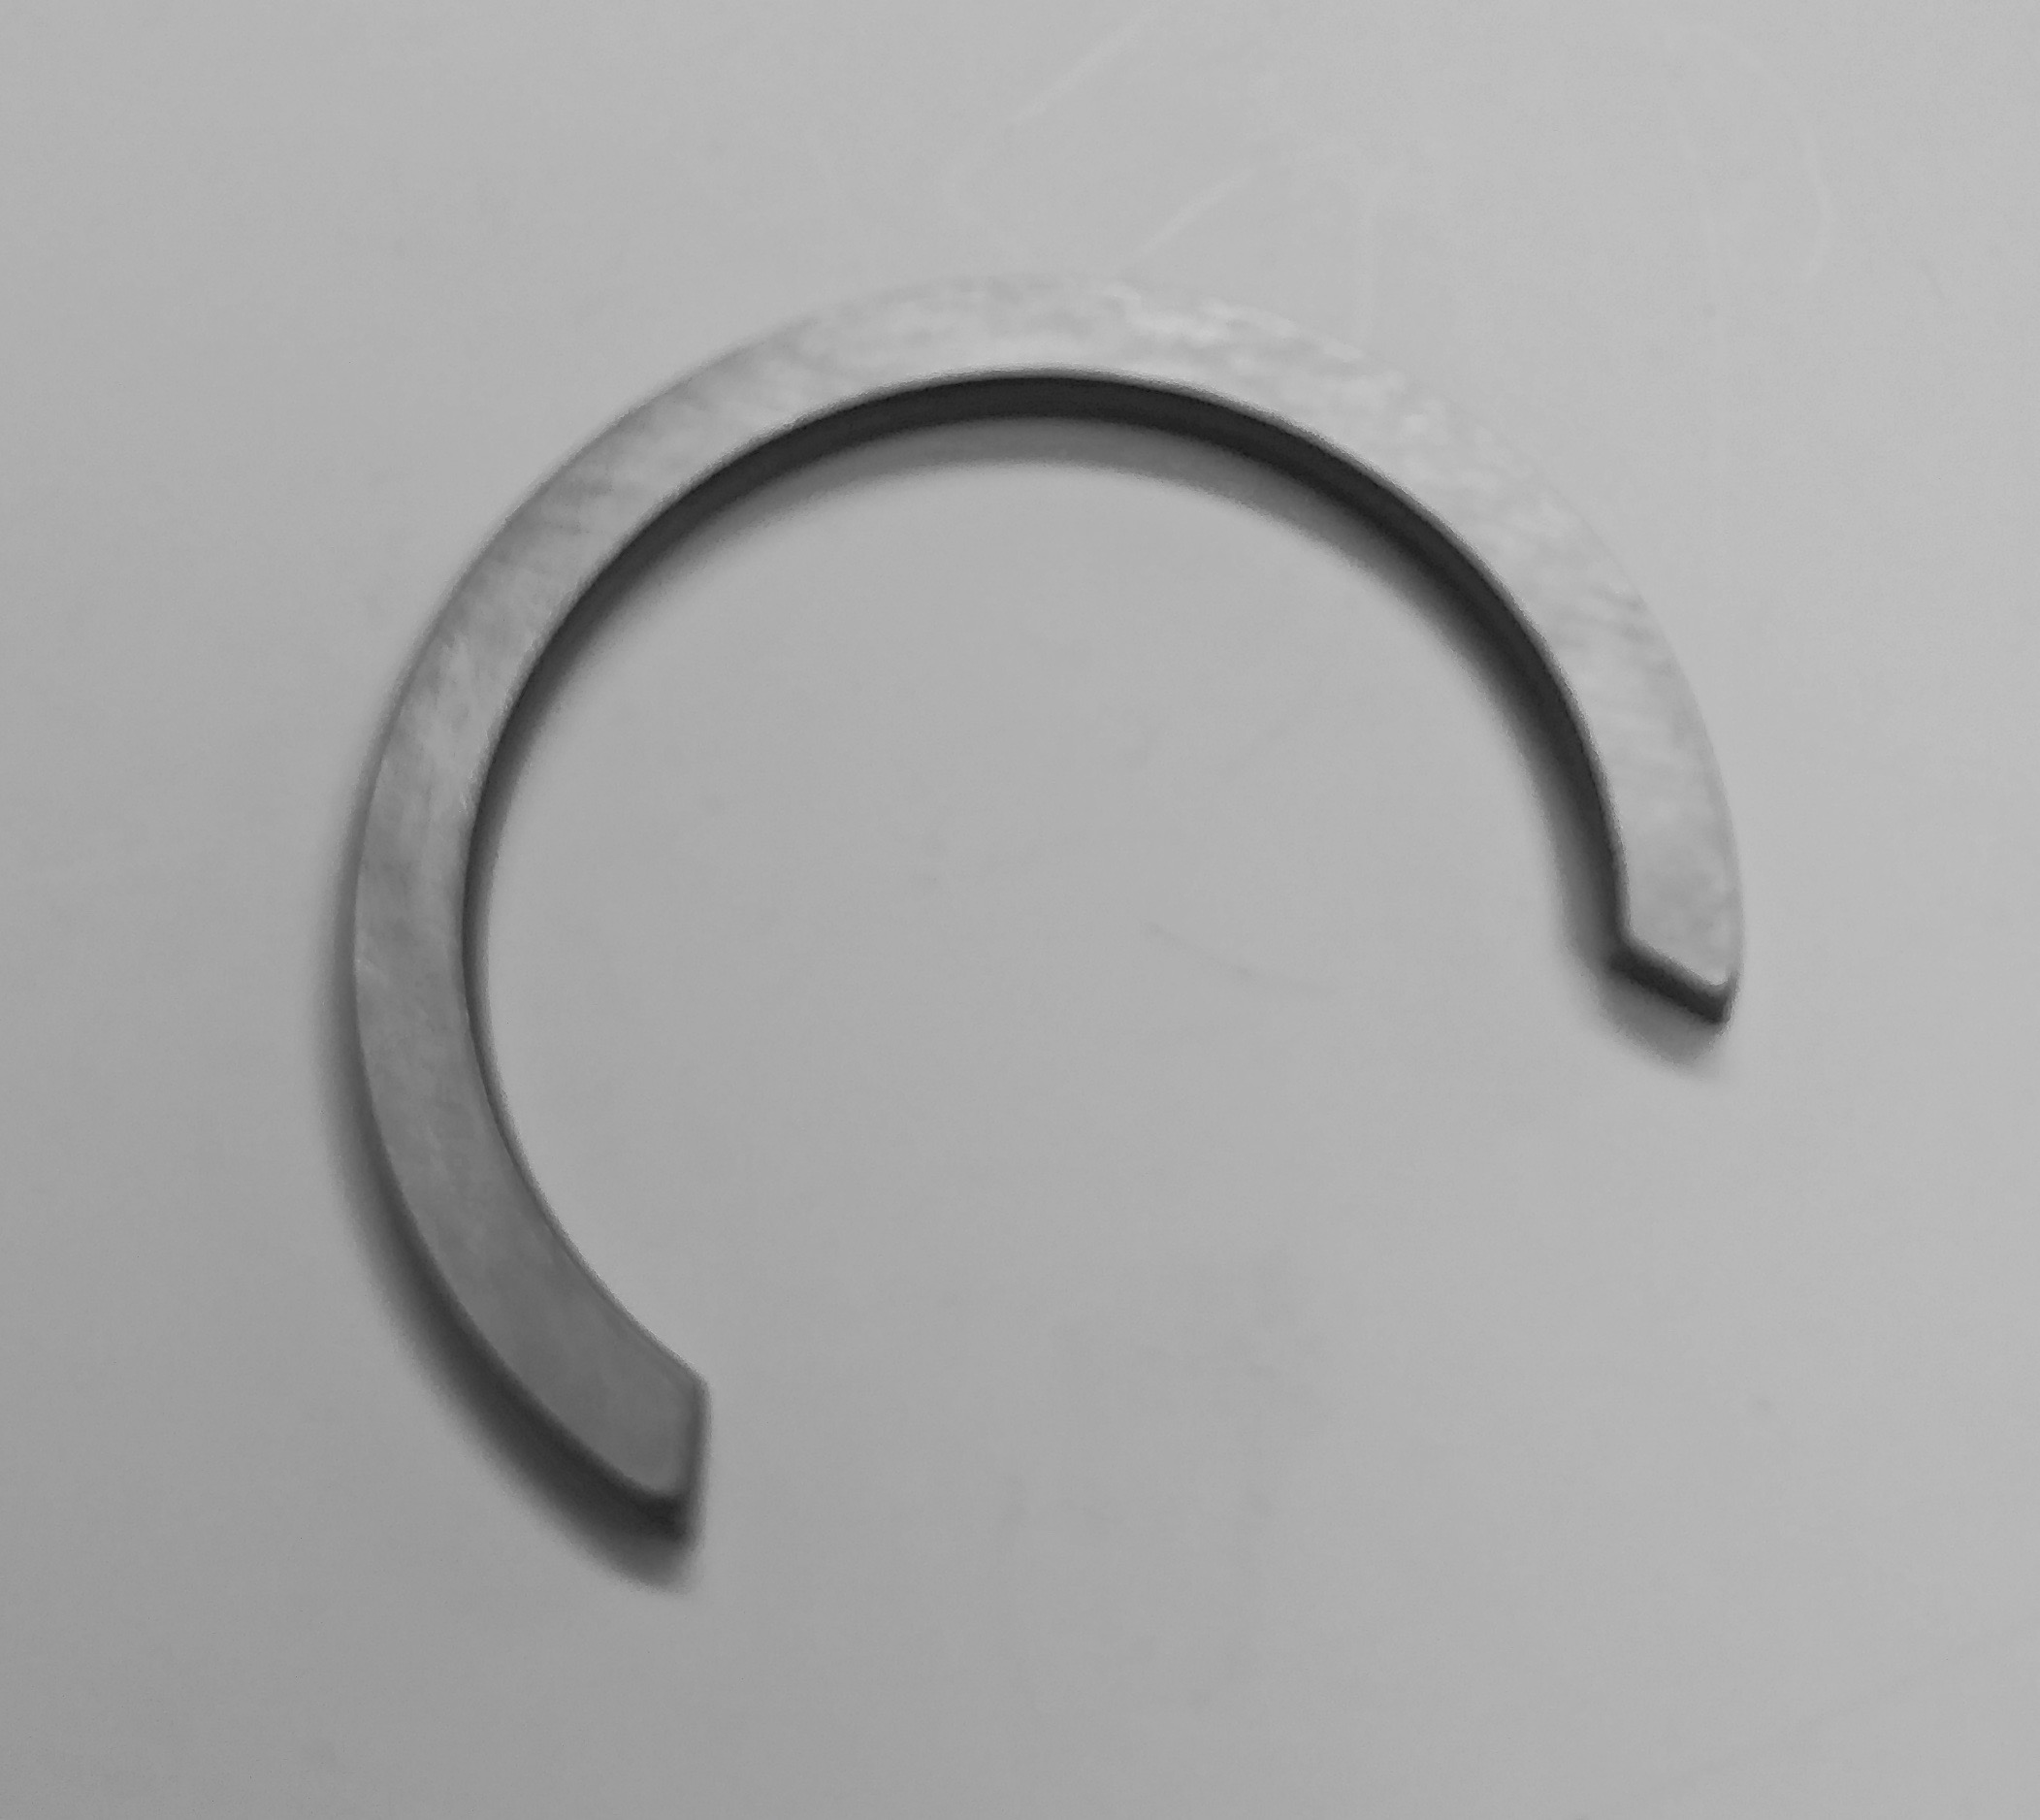 Snap Ring for 07-14 FJ Cruisers